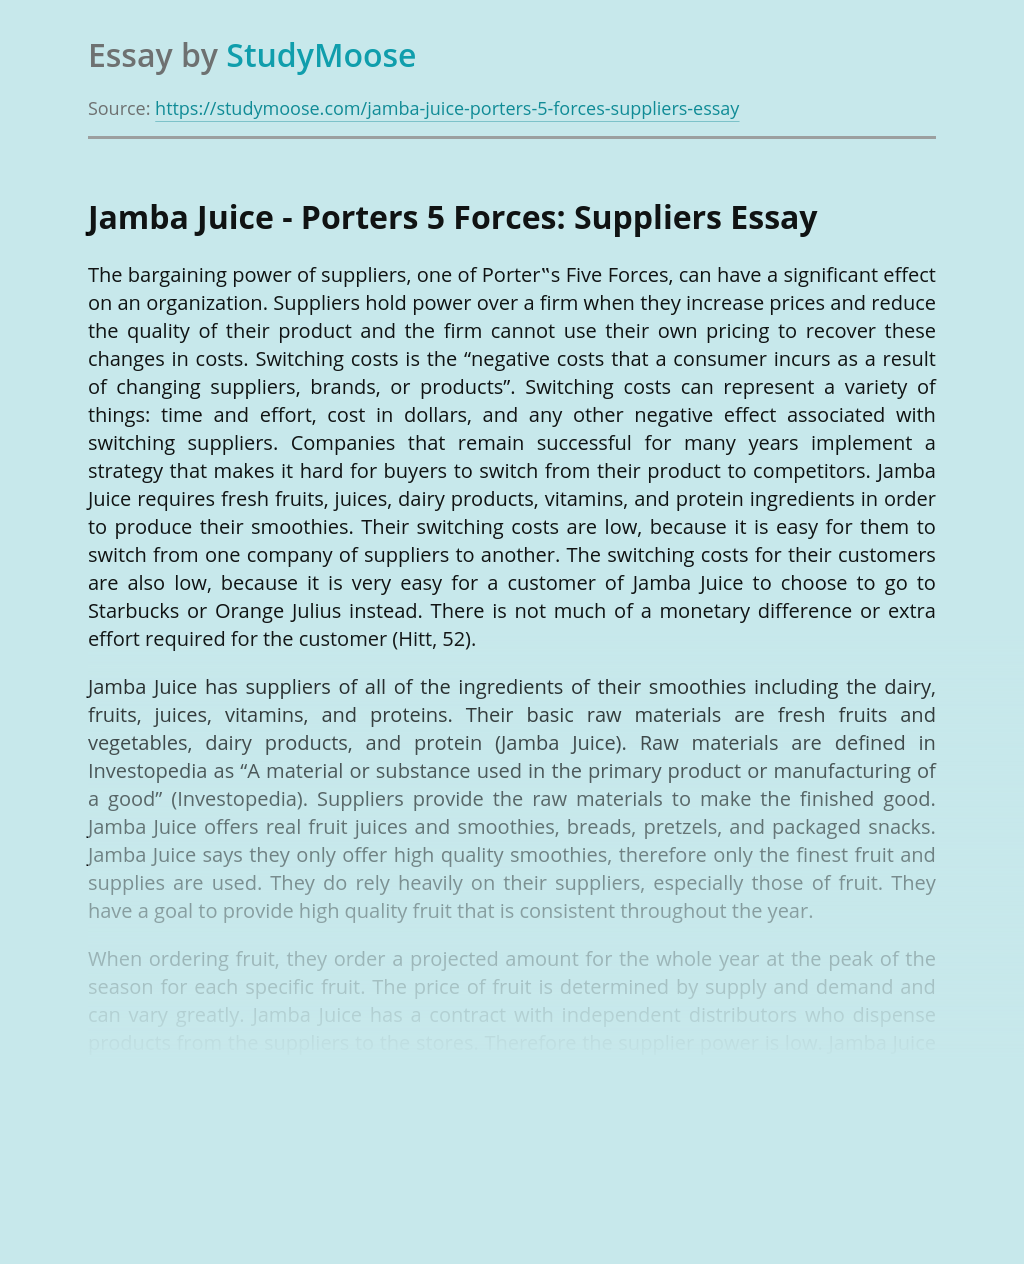 Jamba Juice - Porter's 5 Forces: Suppliers